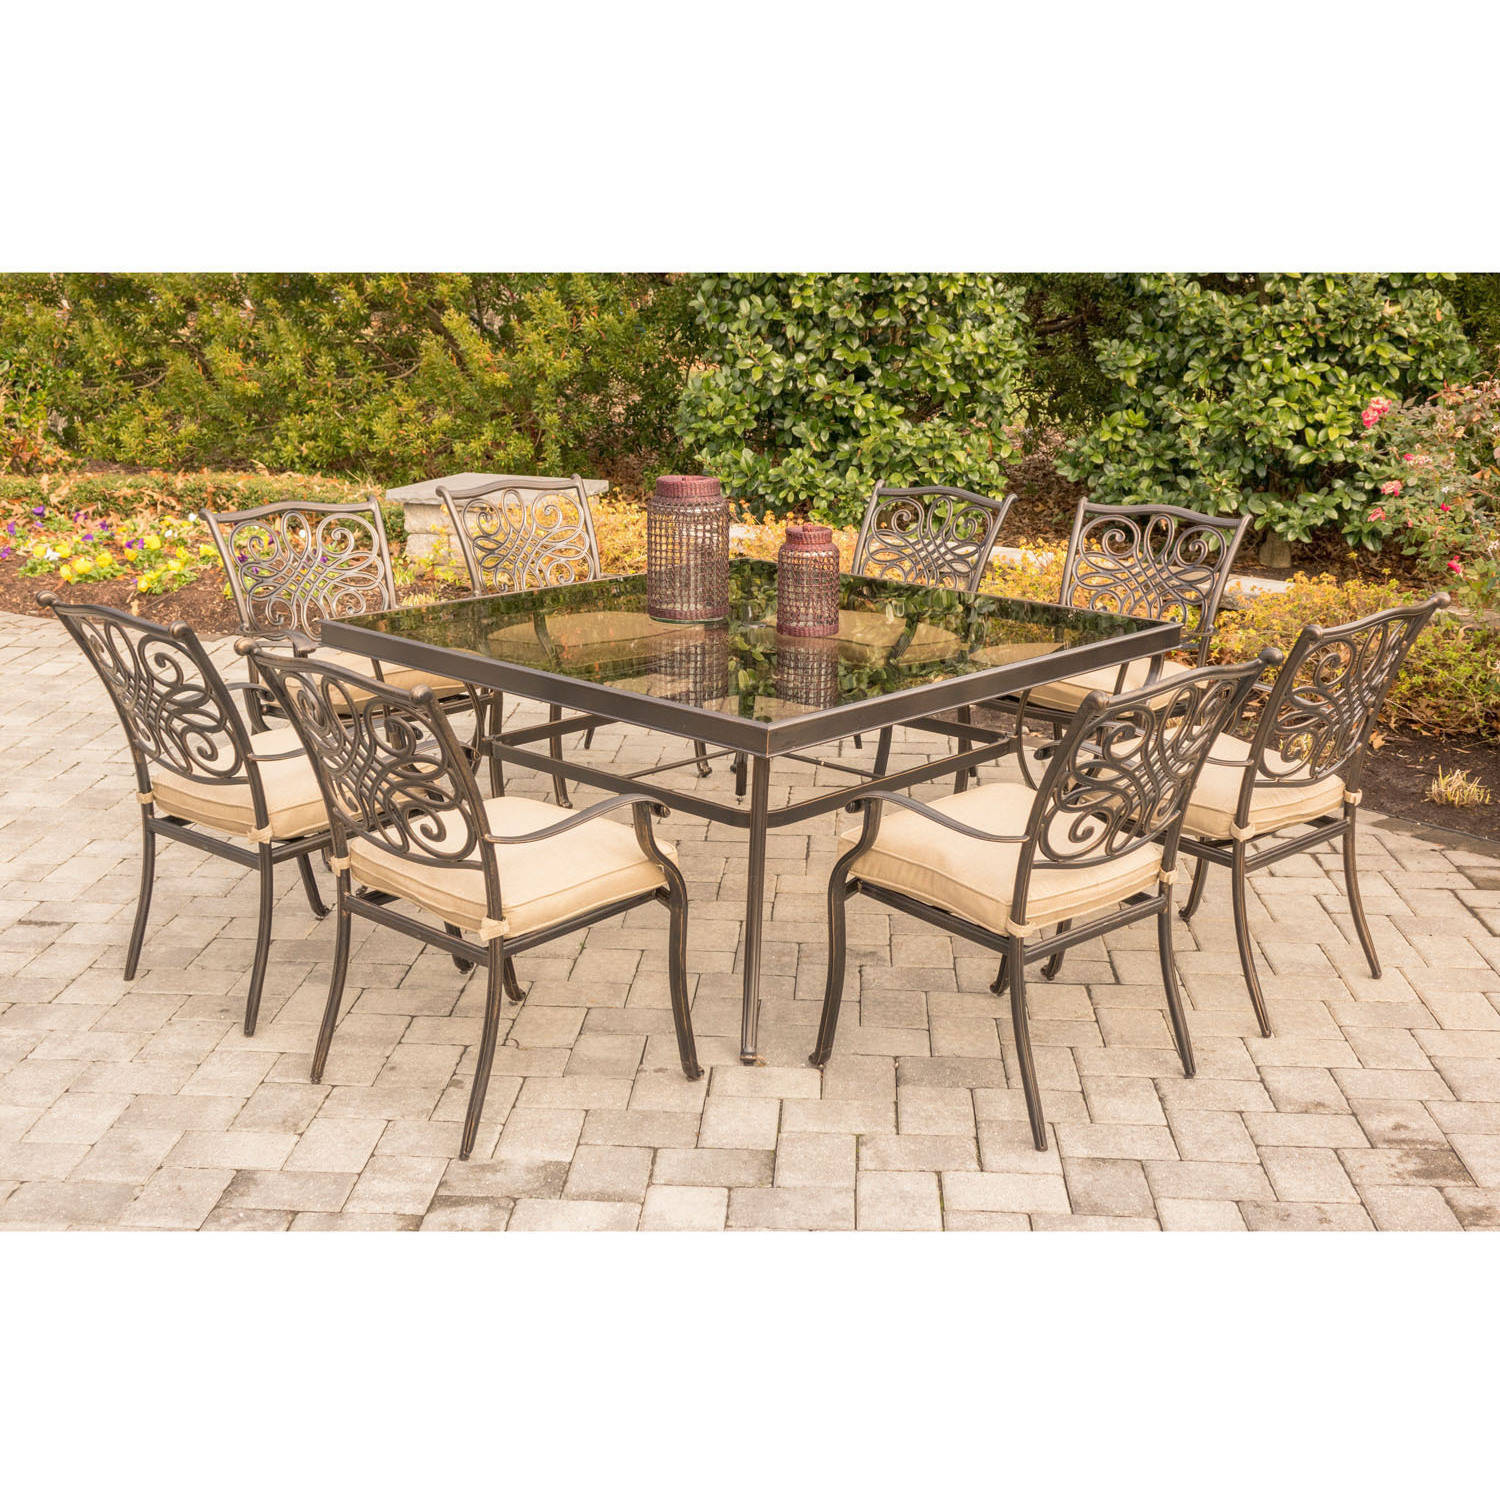 """Hanover Outdoor Traditions 9-Piece Dining Set with 60"""" Square Glass-Top Table and 8 Stationary Chairs"""